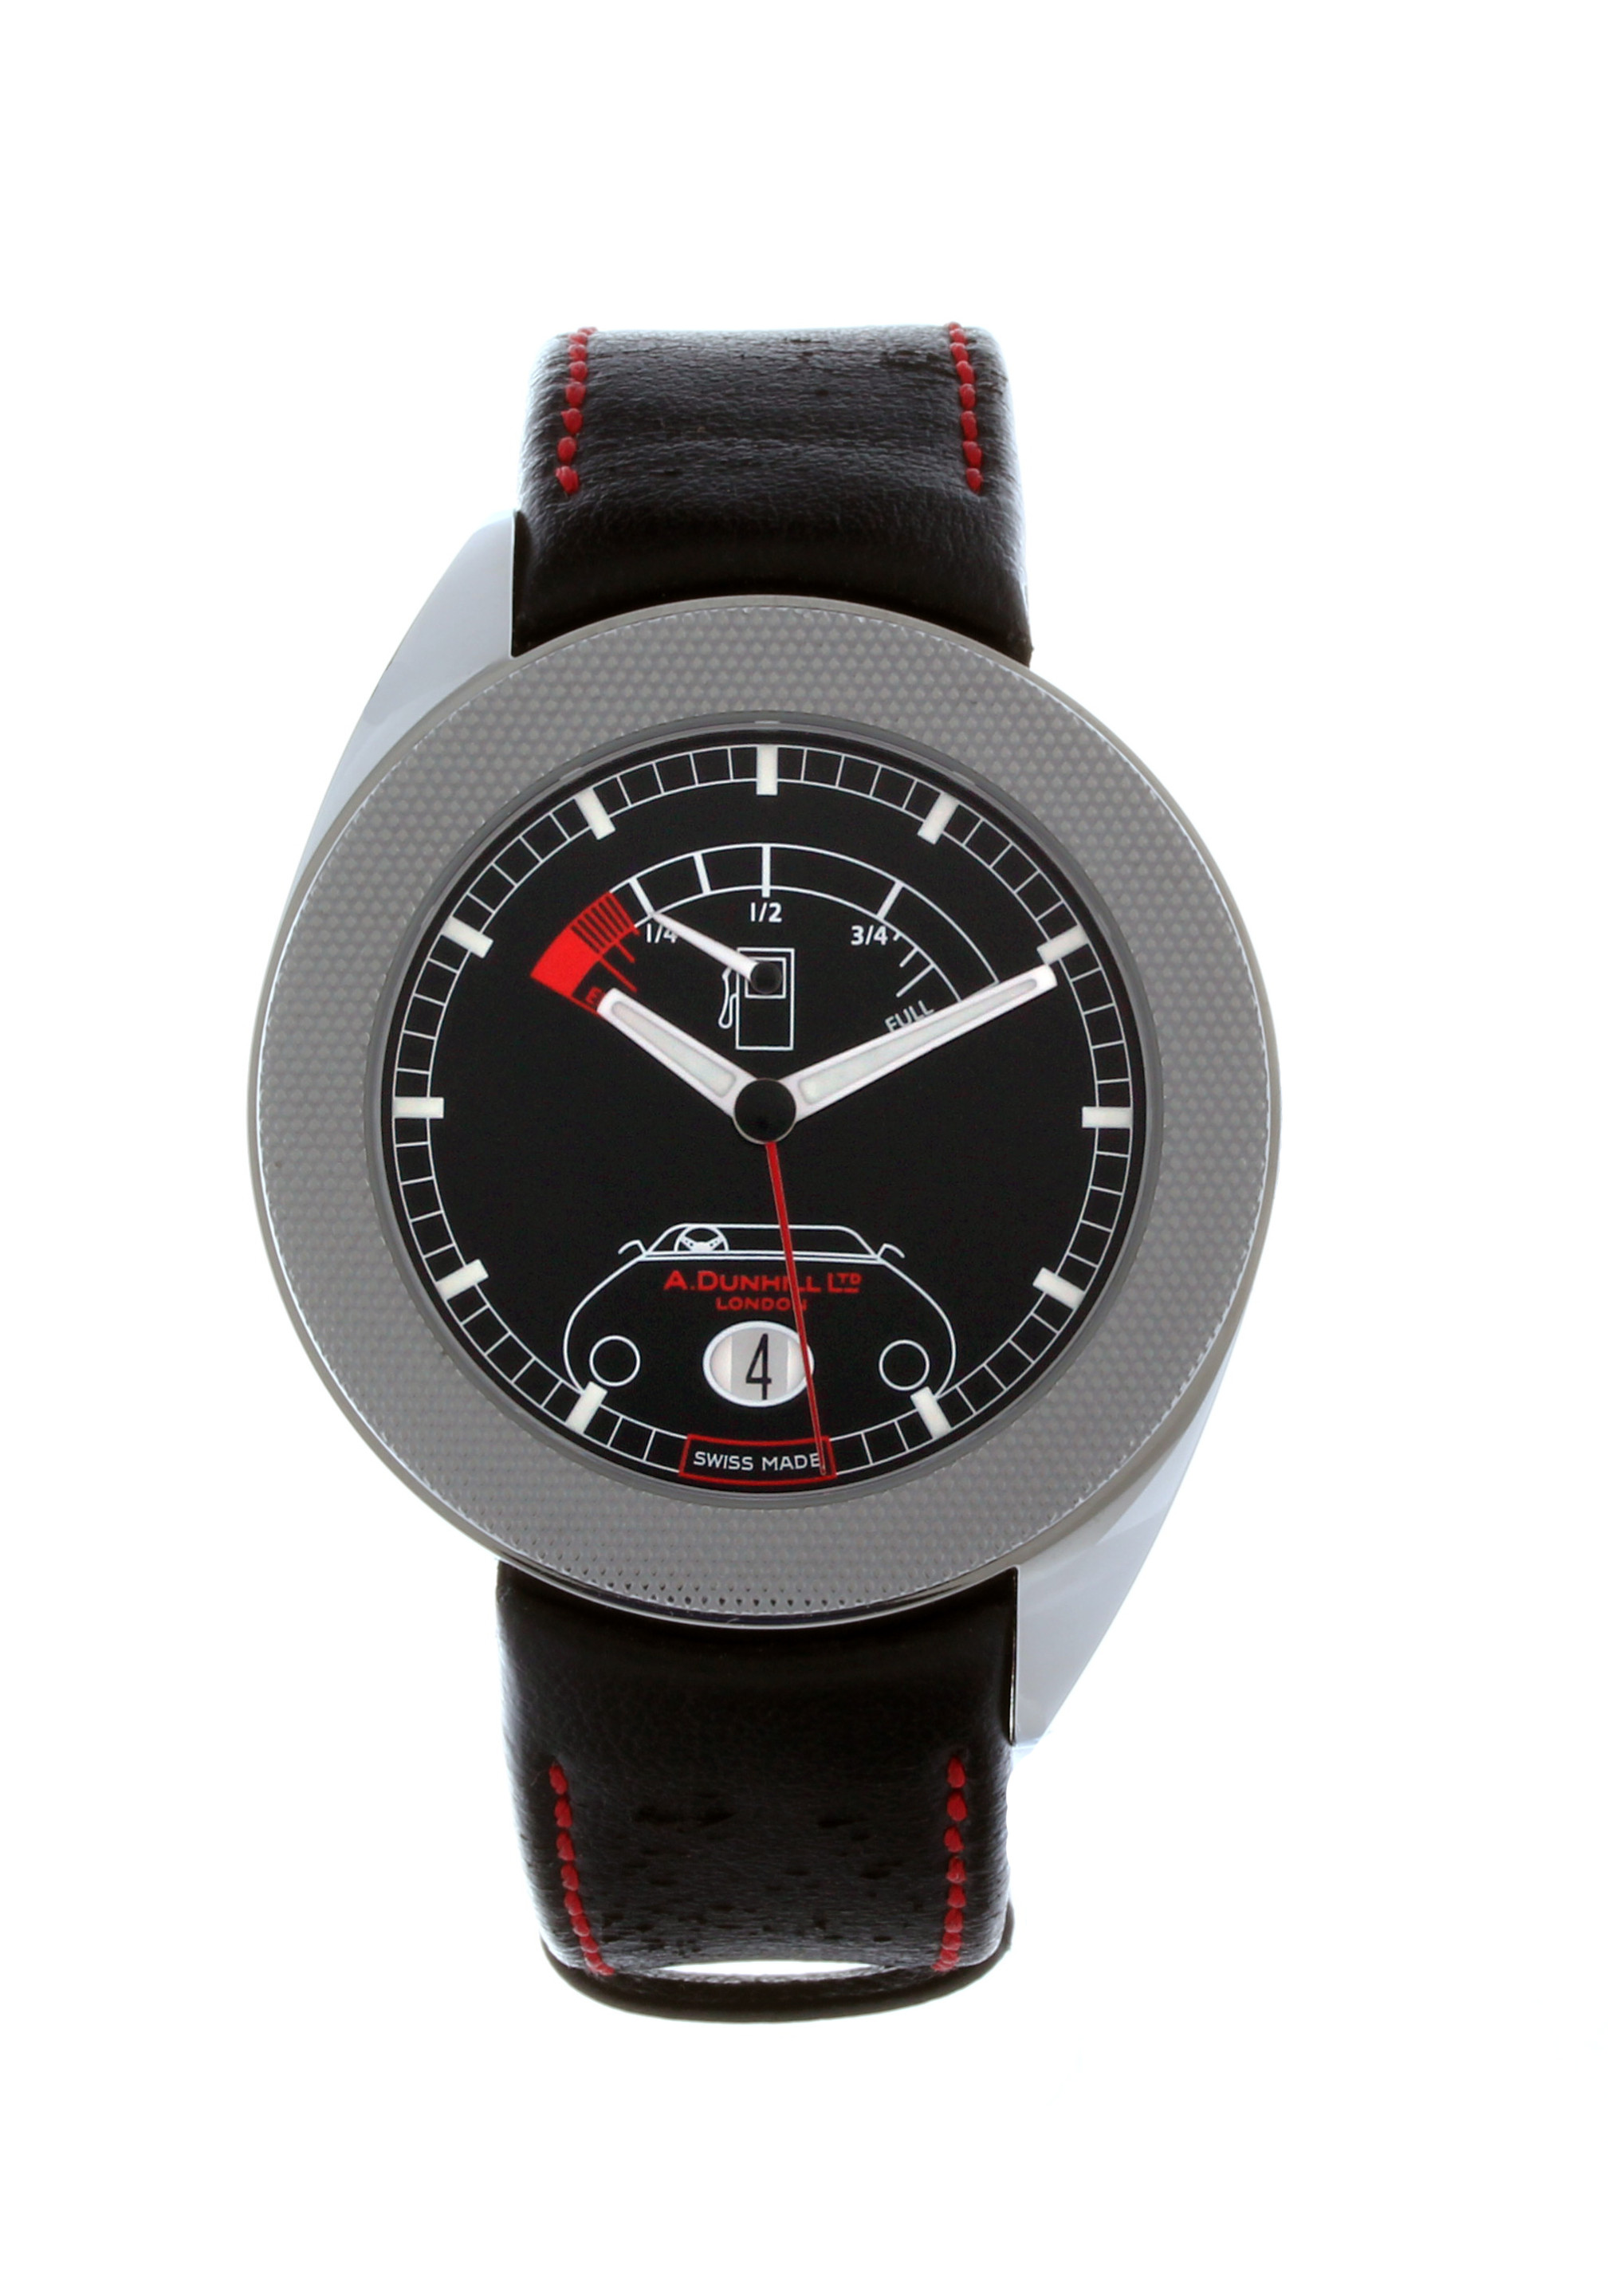 Alfred Dunhill Watches Price Alfred Dunhill Wheel Watch